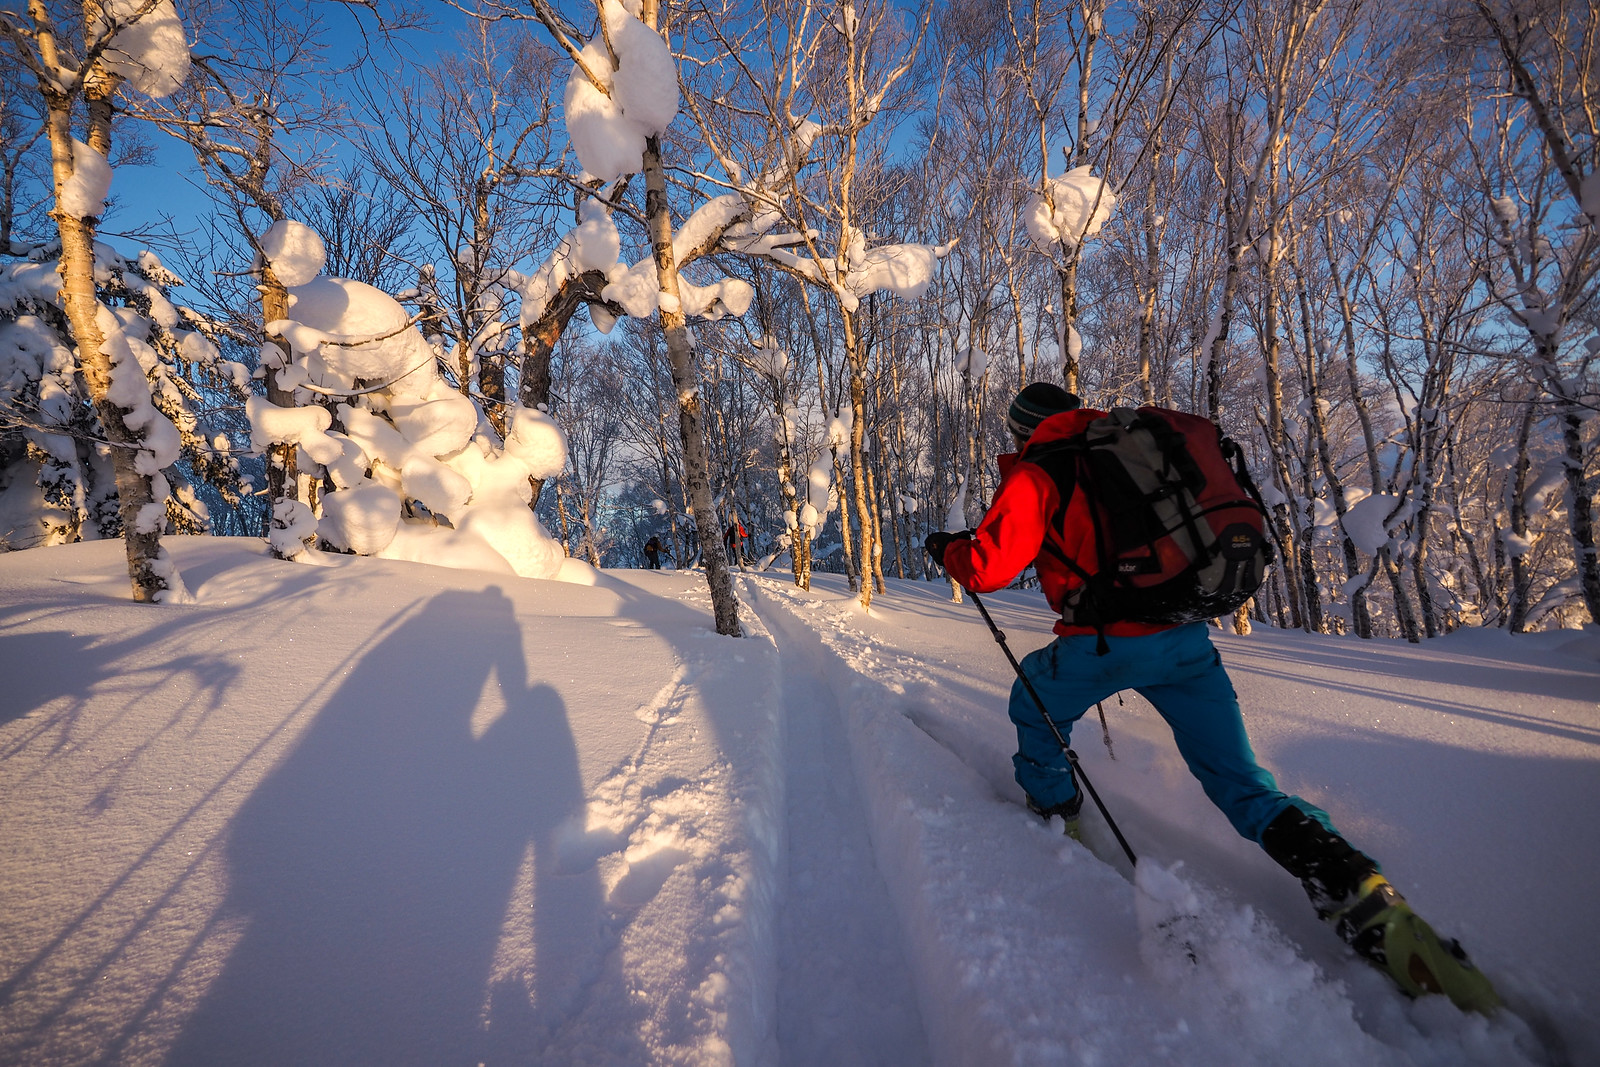 Early morning backcountry skiing near Yama-no-ie Hut (Mt. Okuteine, Hokkaido, Japan)